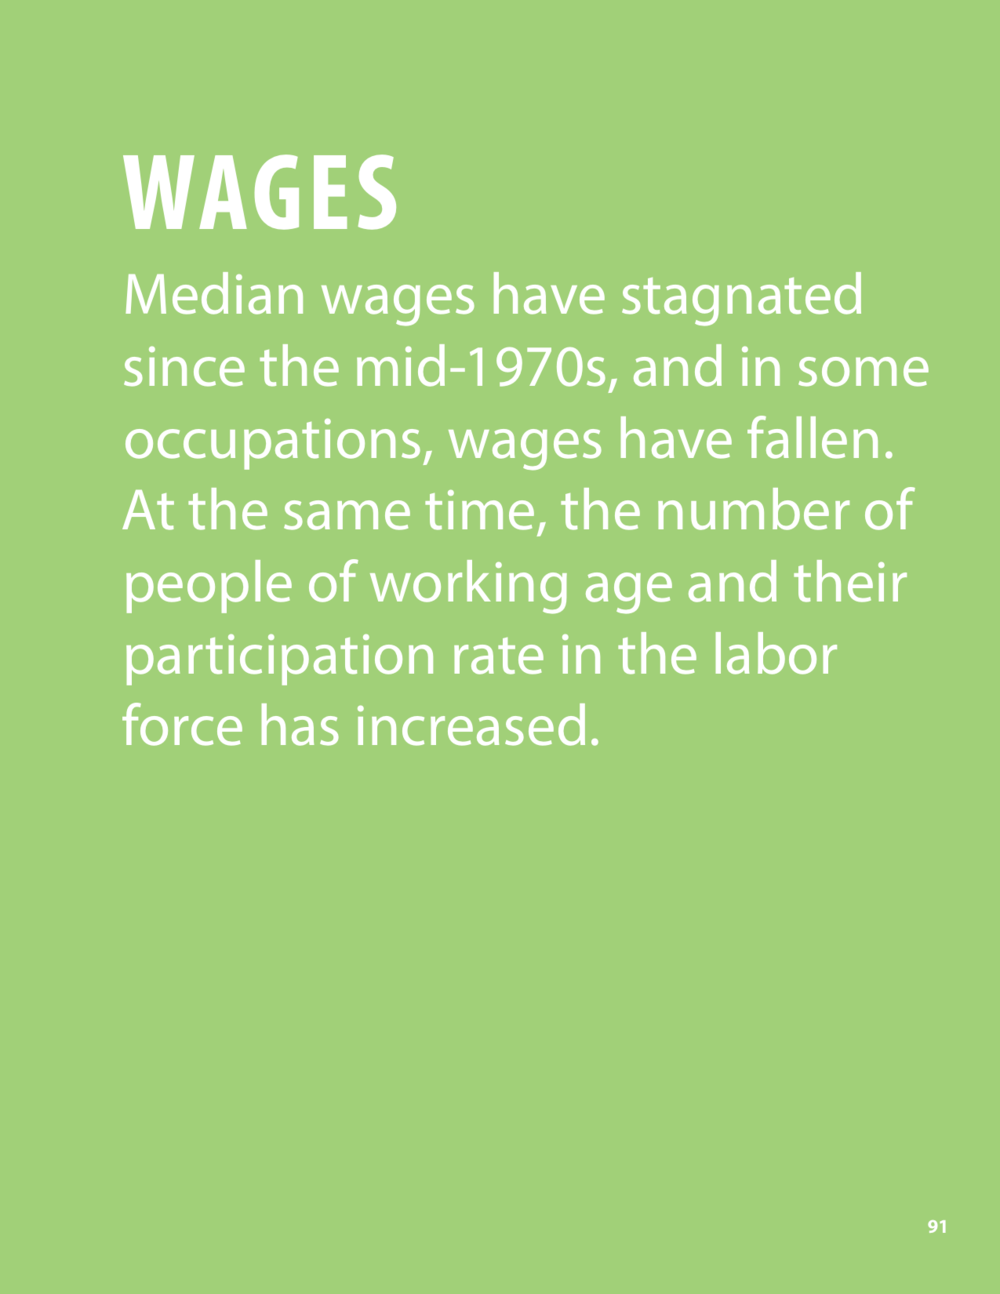 IncomeGuide_2013_Jan17_RGB_page 91_91.png